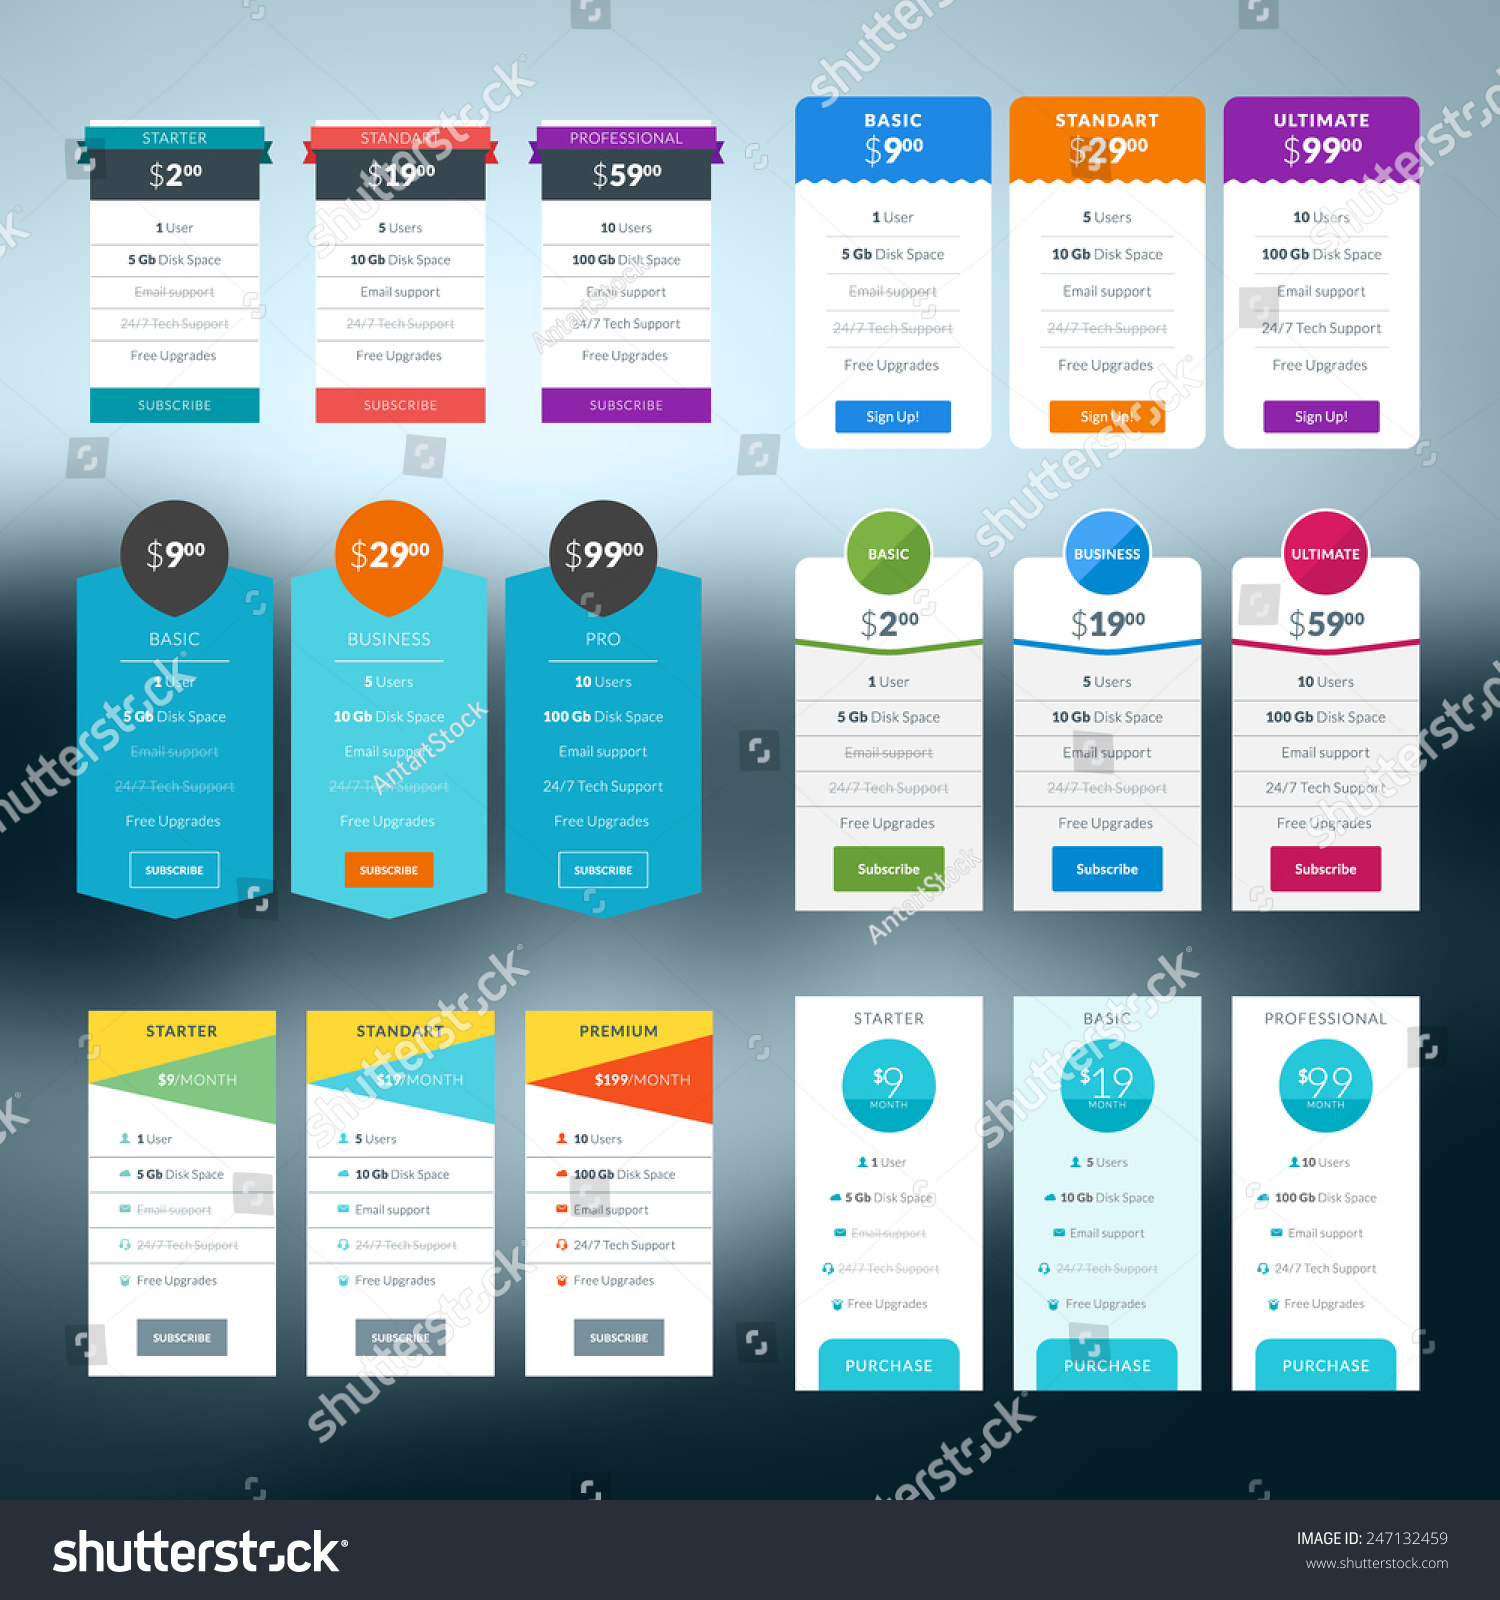 Doc.#630599: Price List Design Template – Pricing Tables (+88 ...